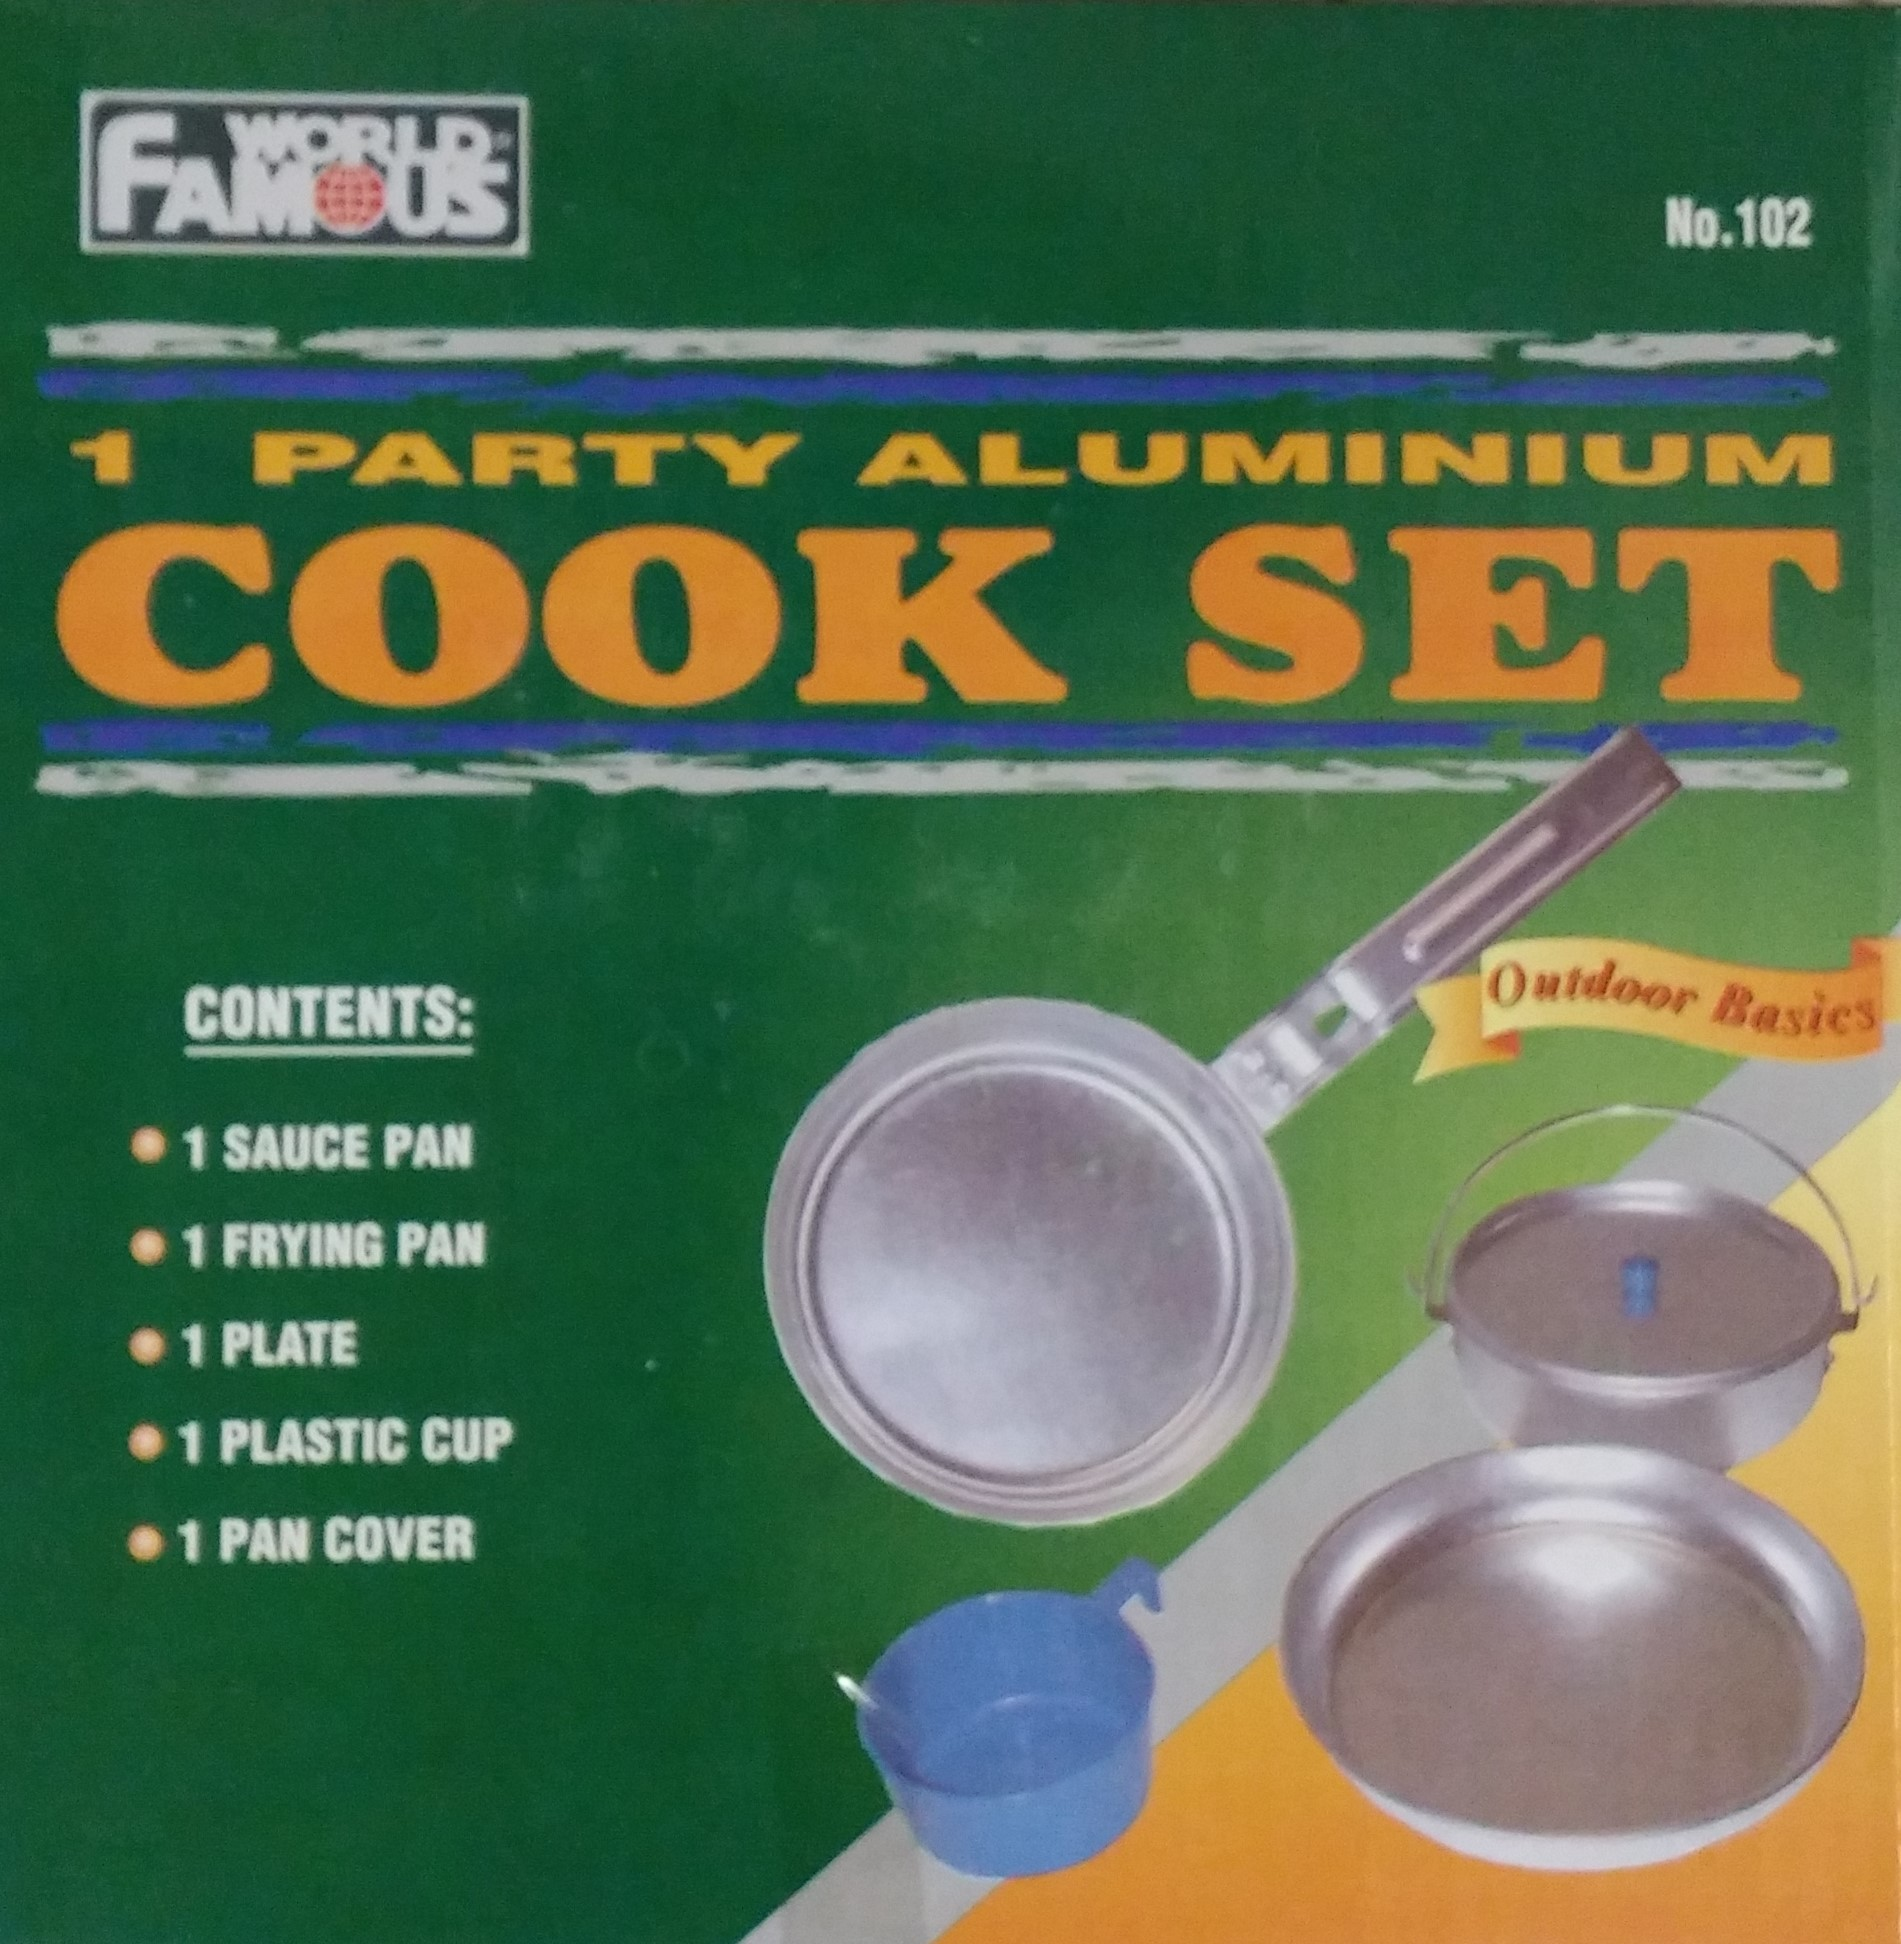 Aluminium mess kit